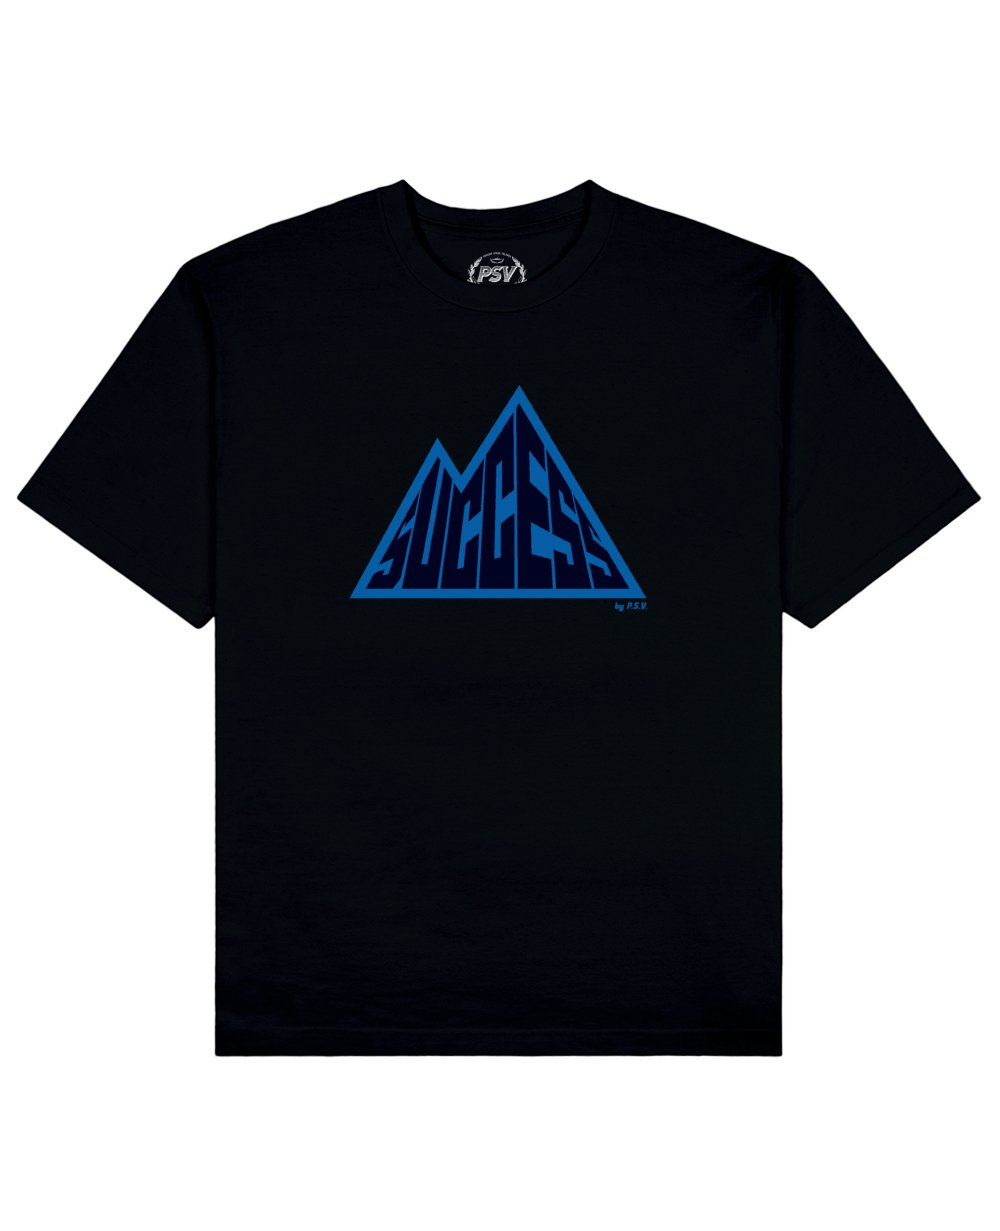 Success is a Mountain Print T-Shirt in Black - T-Shirts - PSV - BRANMA